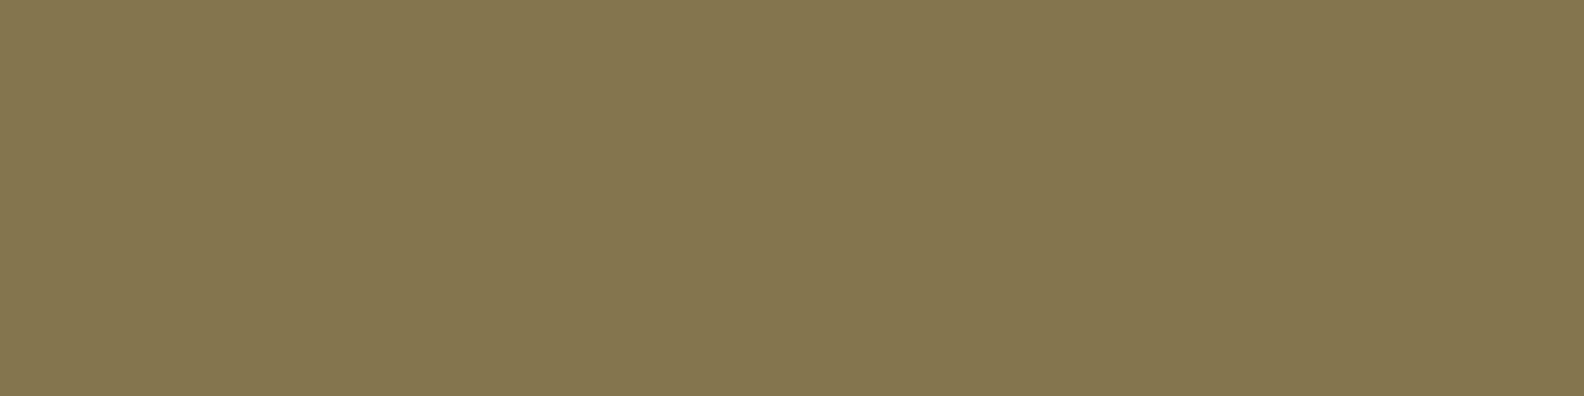 1584x396 Gold Fusion Solid Color Background